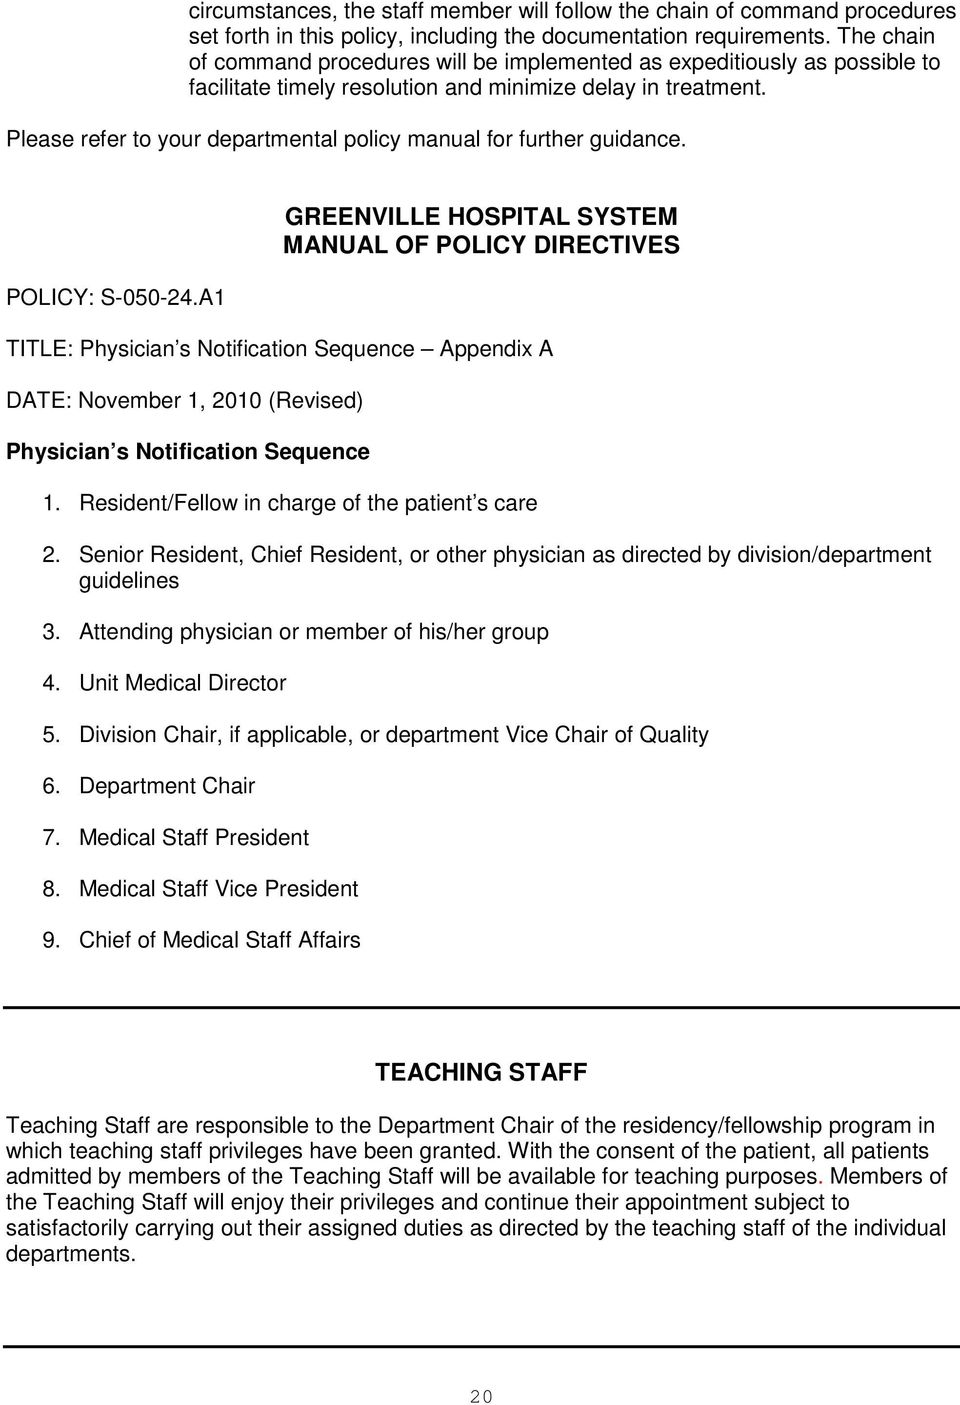 Please refer to your departmental policy manual for further guidance. POLICY: S-050-24.